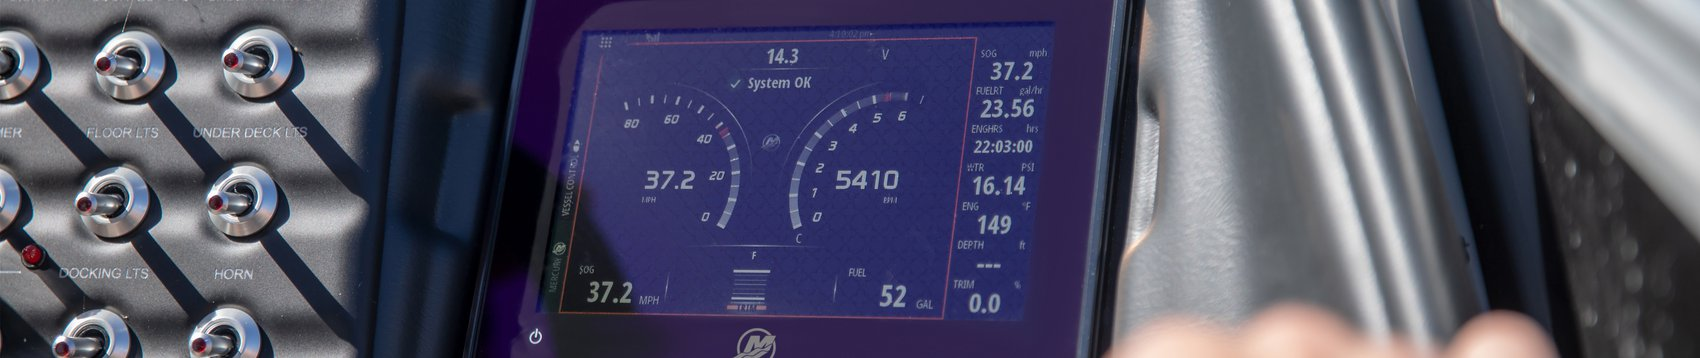 Gauges  Displays Mercury Marine